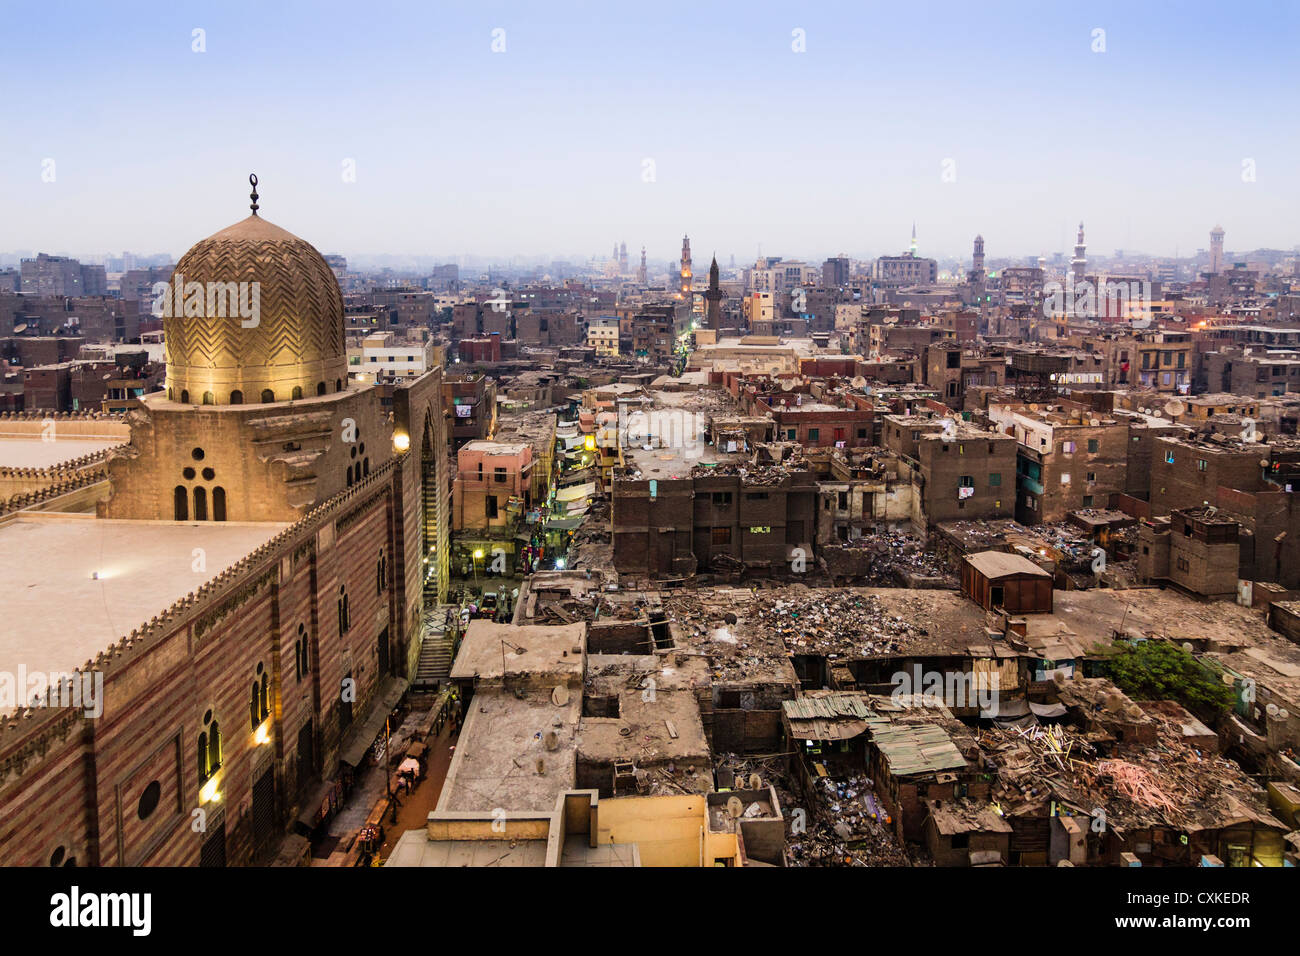 Overview of Islamic Cairo with Mosque of Sultan al-Muayyad and derelict roof buildings. Cairo, Egypt - Stock Image